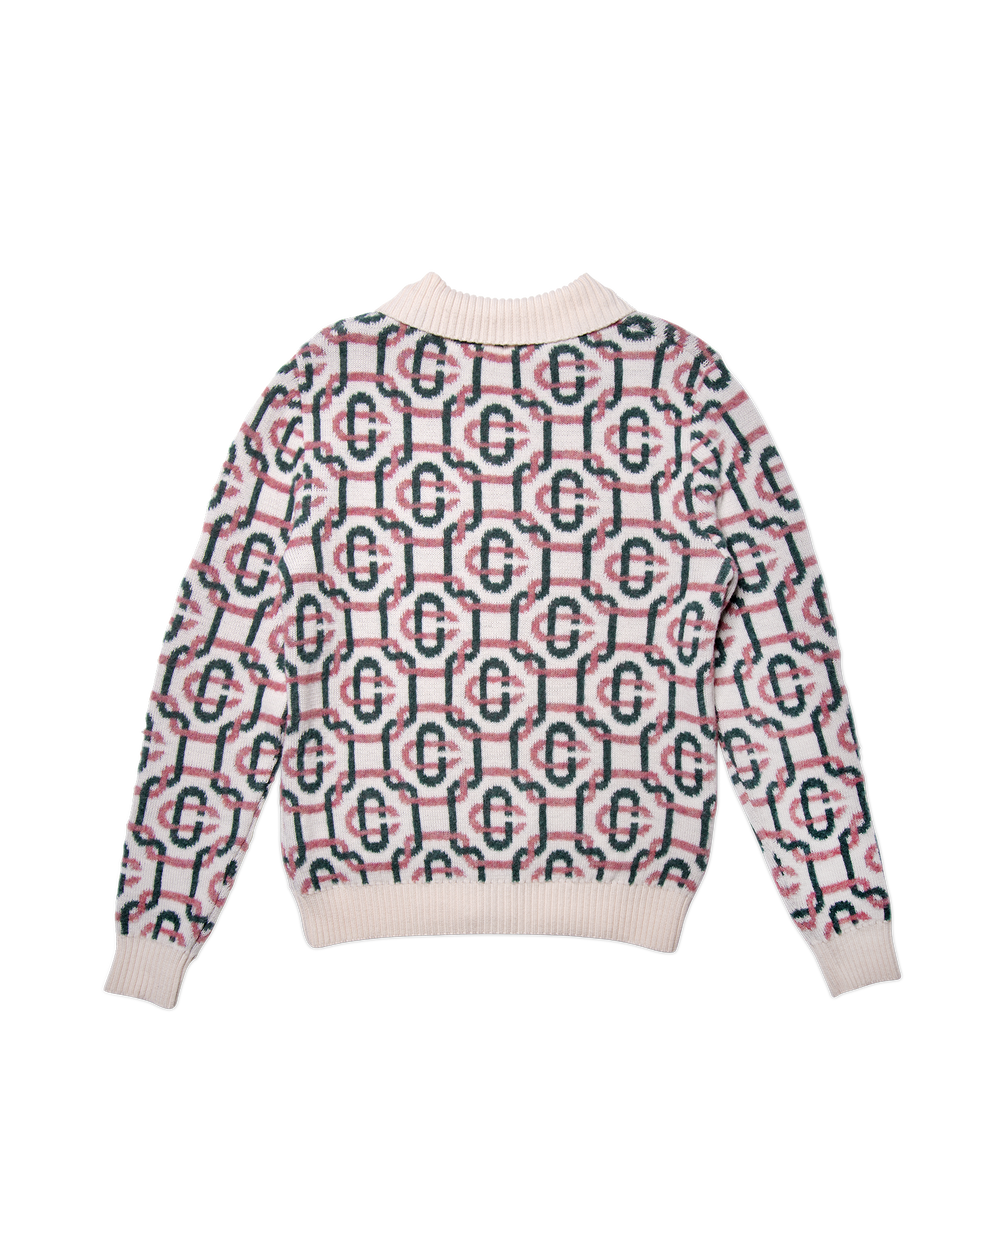 Monogram Zip-up Knitted Top